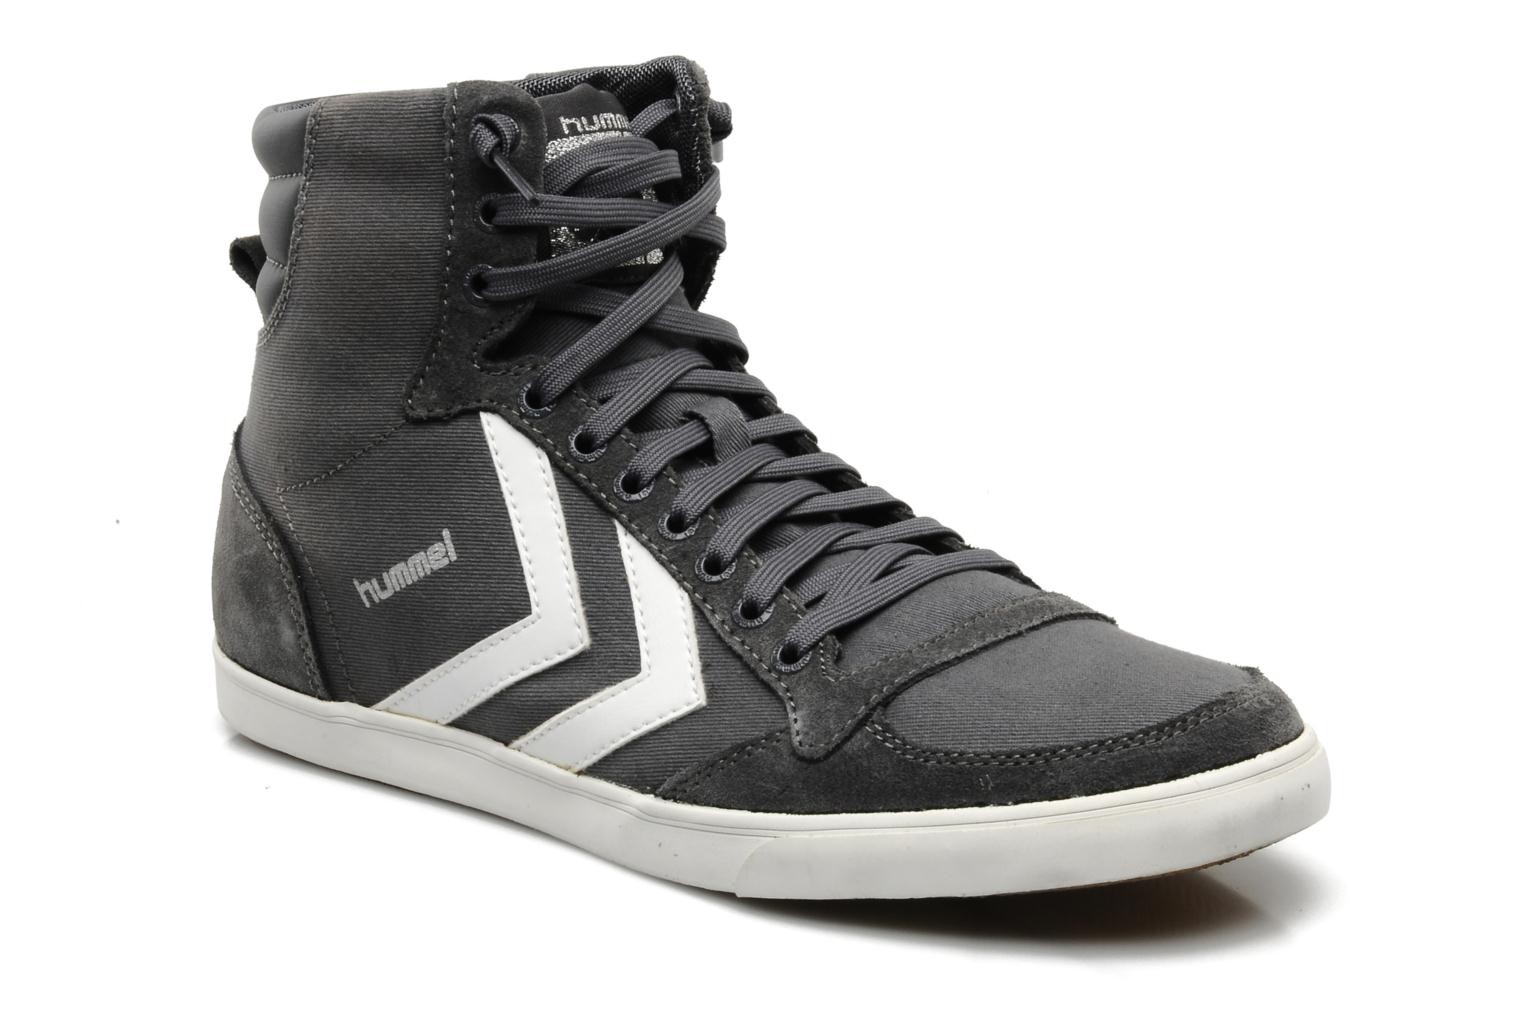 hummel slimmer stadil high canvas trainers in grey at